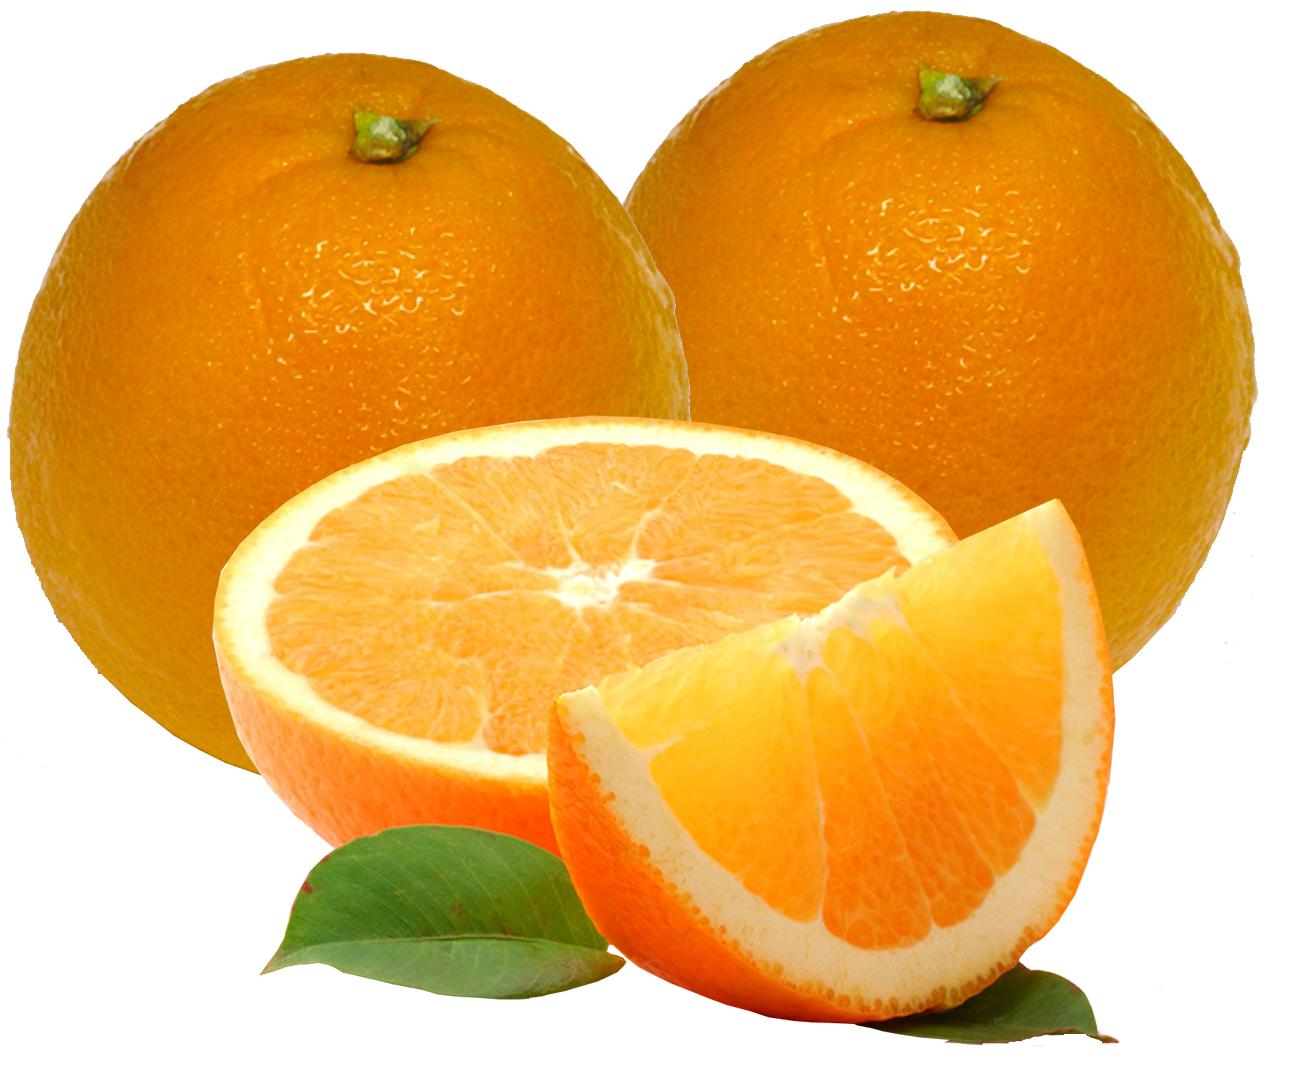 navel oranges america s most popular eating orange navel oranges are ...